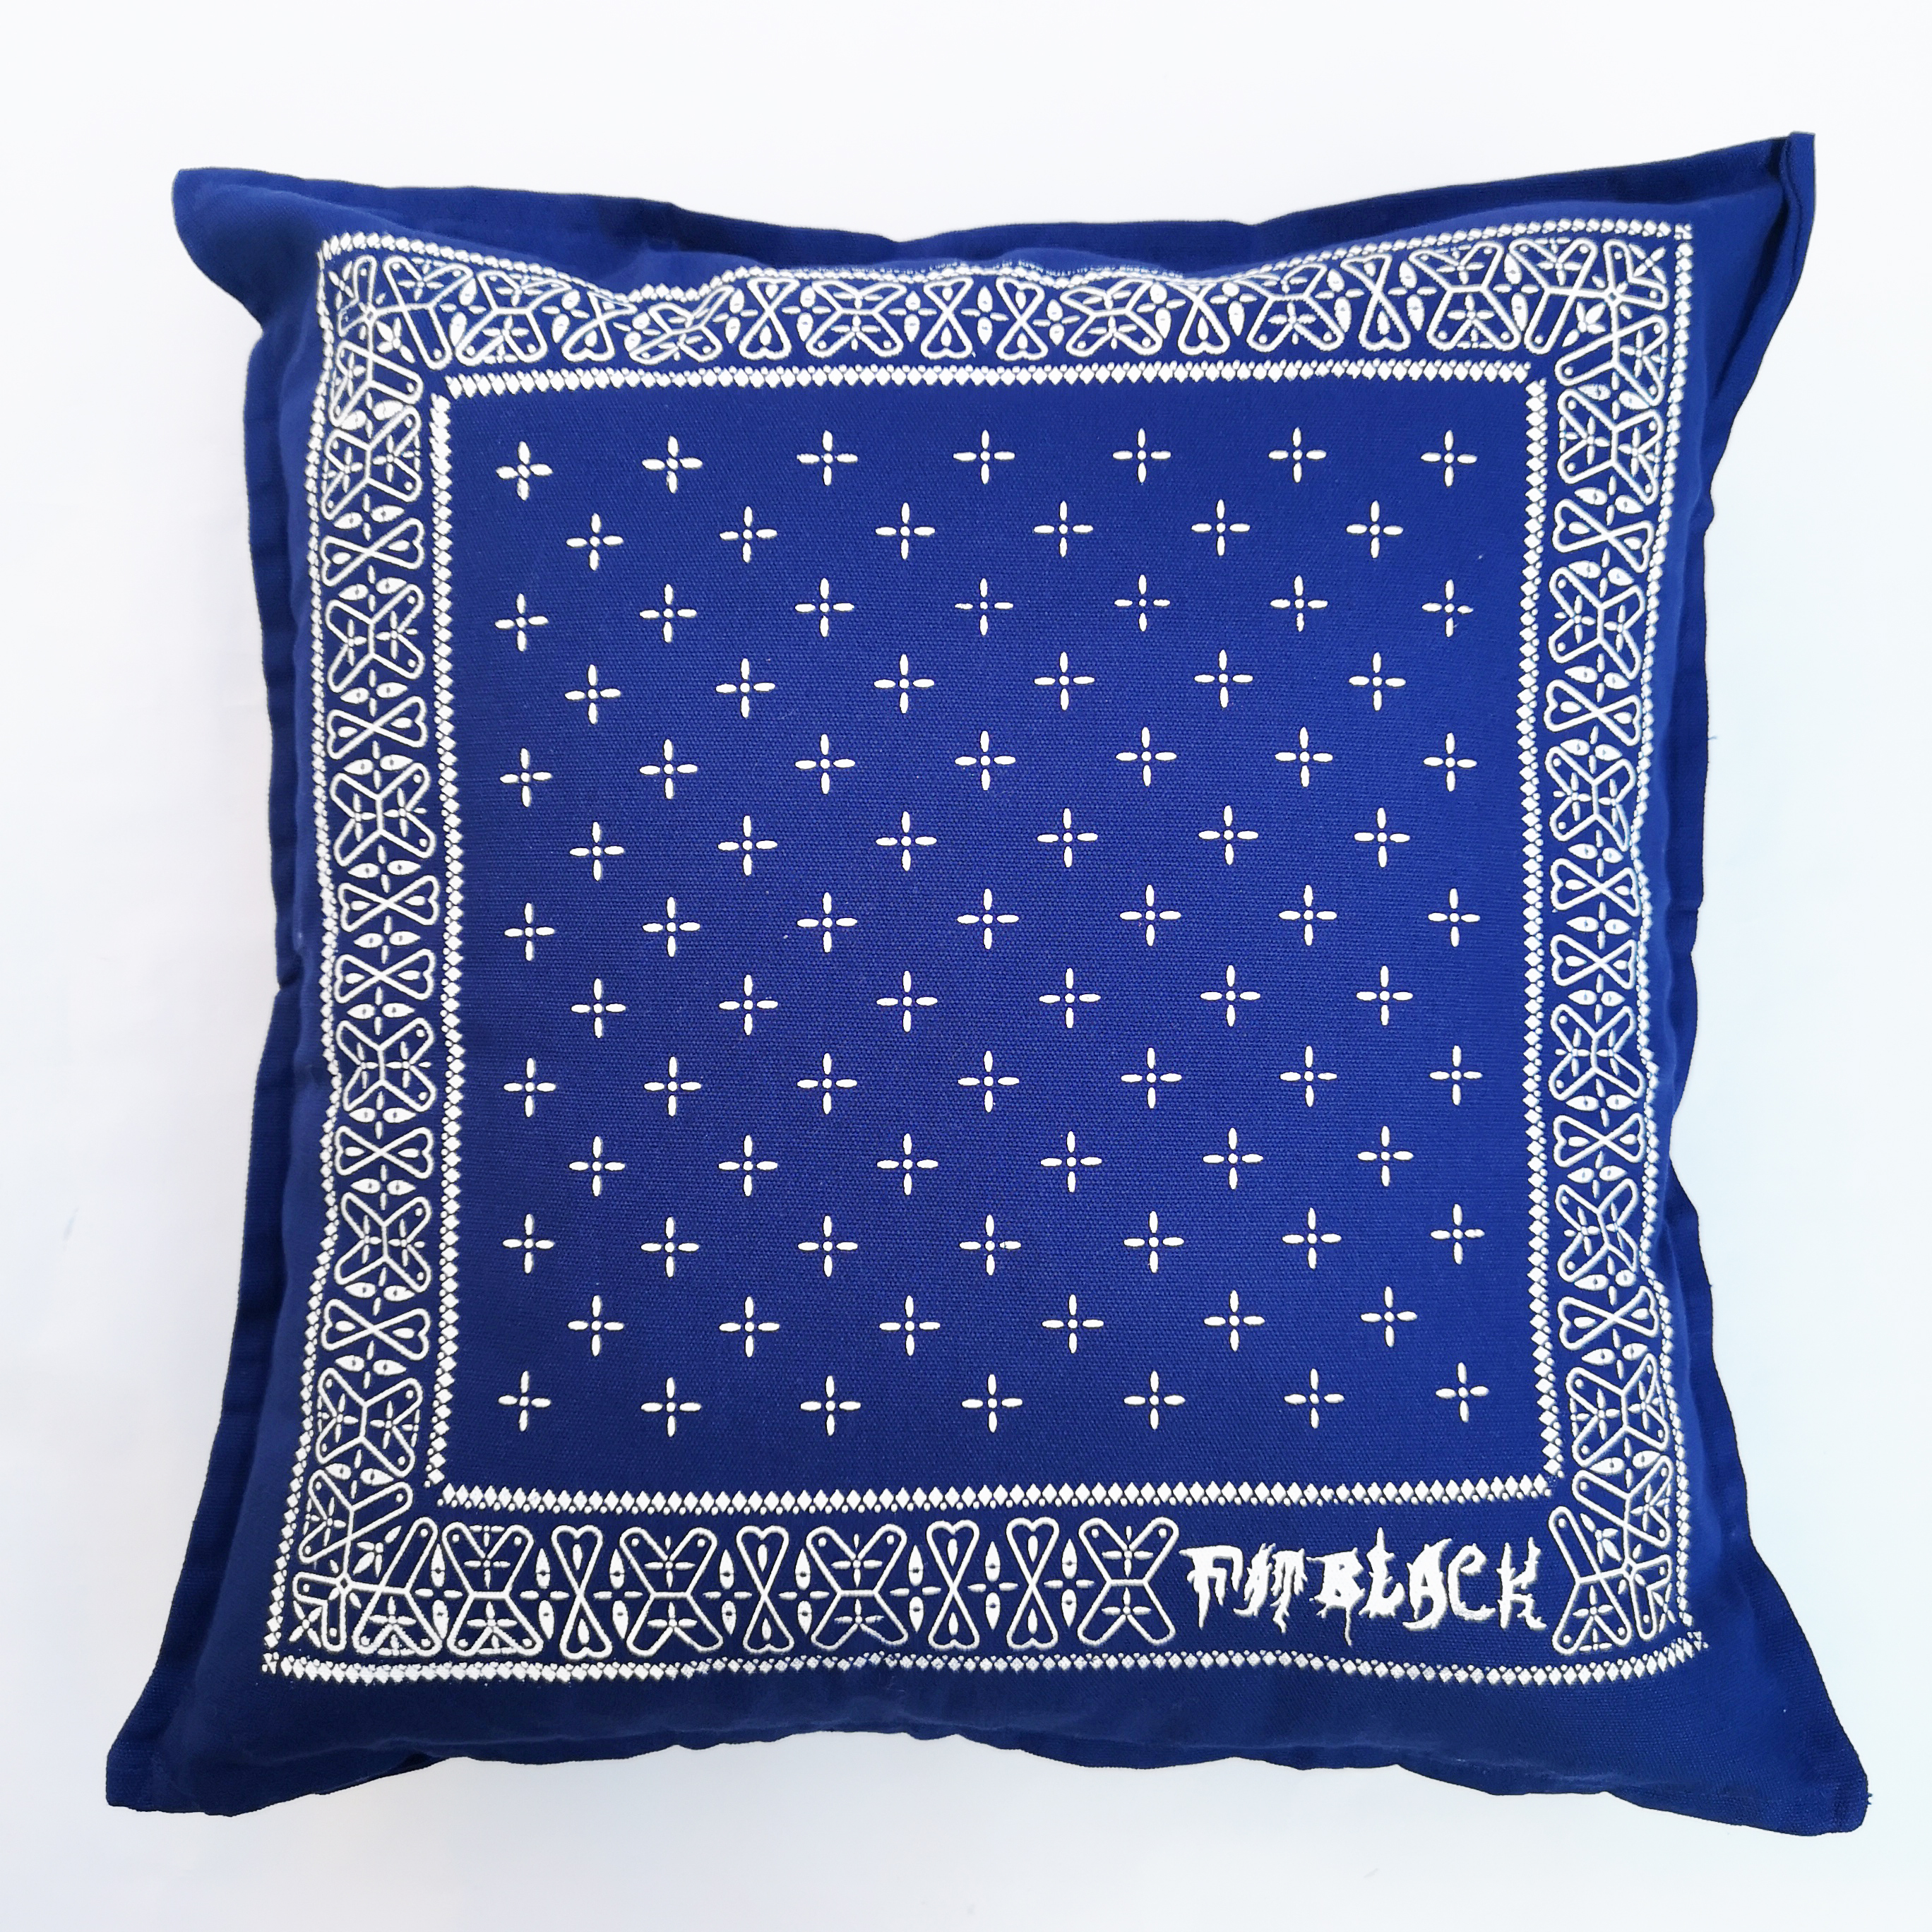 FATBLACK CROSS BANDANA CUSHION NAVY